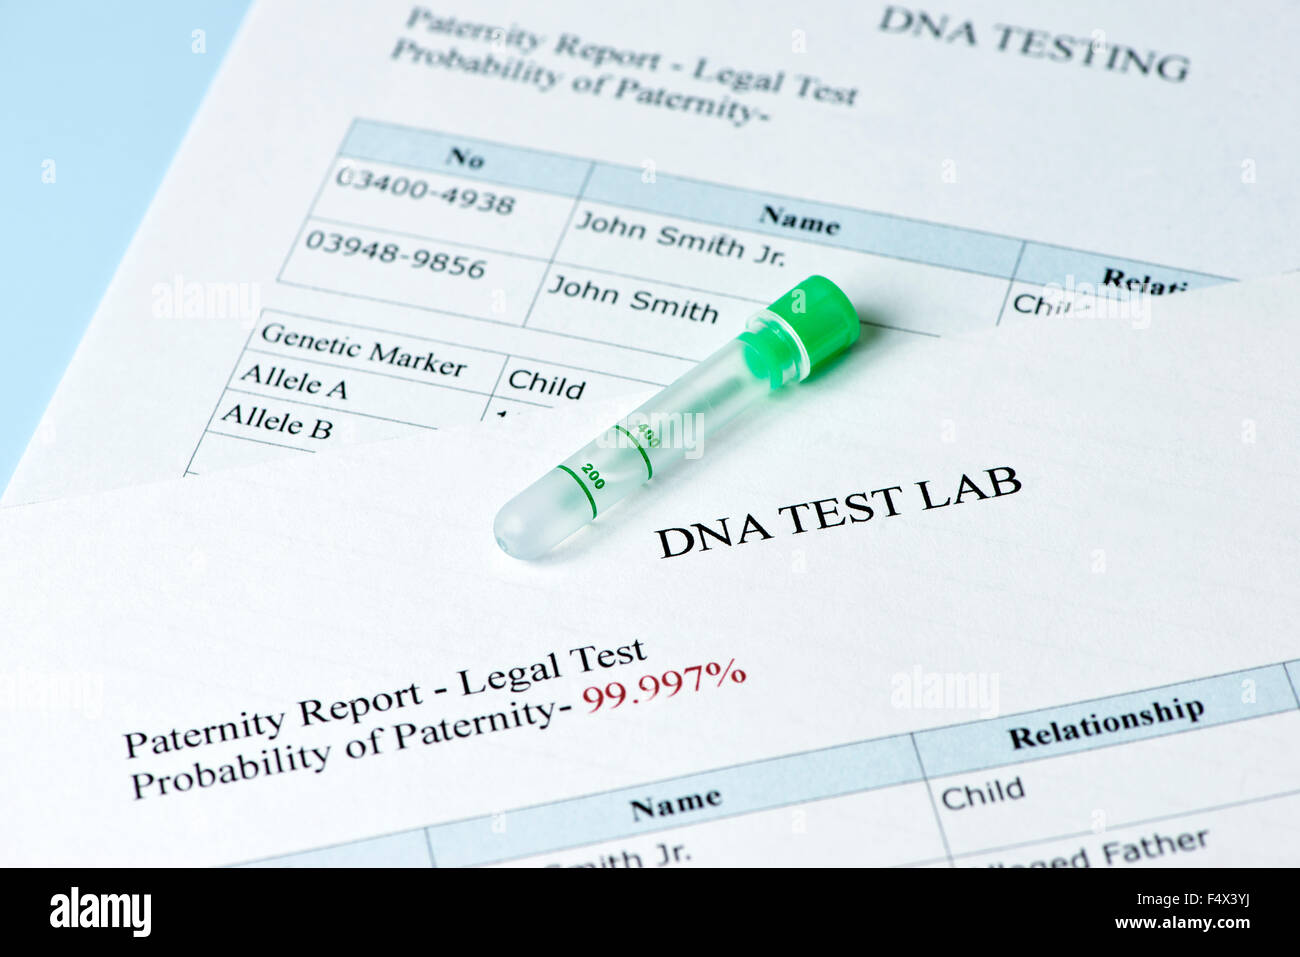 Paternity test results report with lab sample test tube stock photo paternity test results report with lab sample test tube thecheapjerseys Gallery